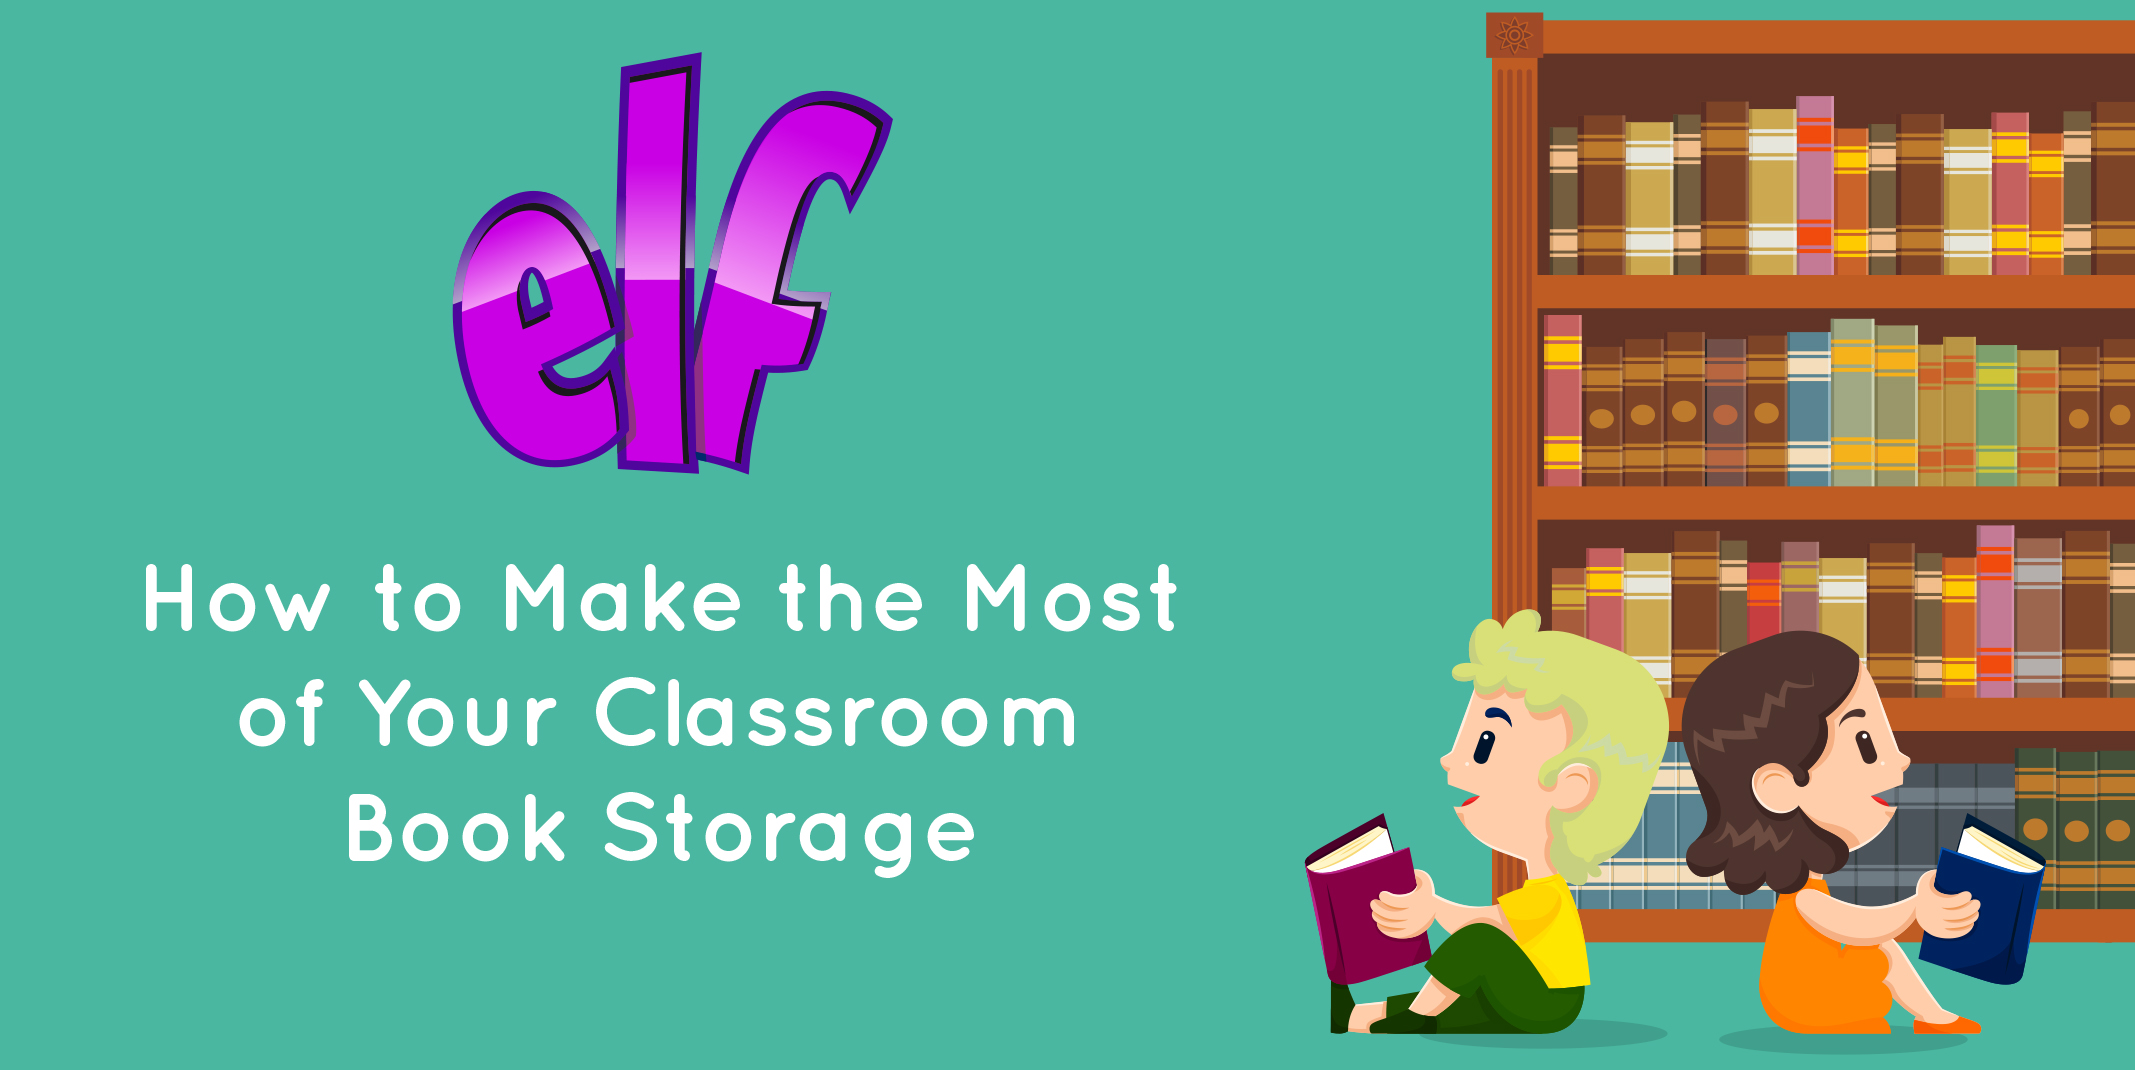 How to Make the Most of Your Classroom Book Storage